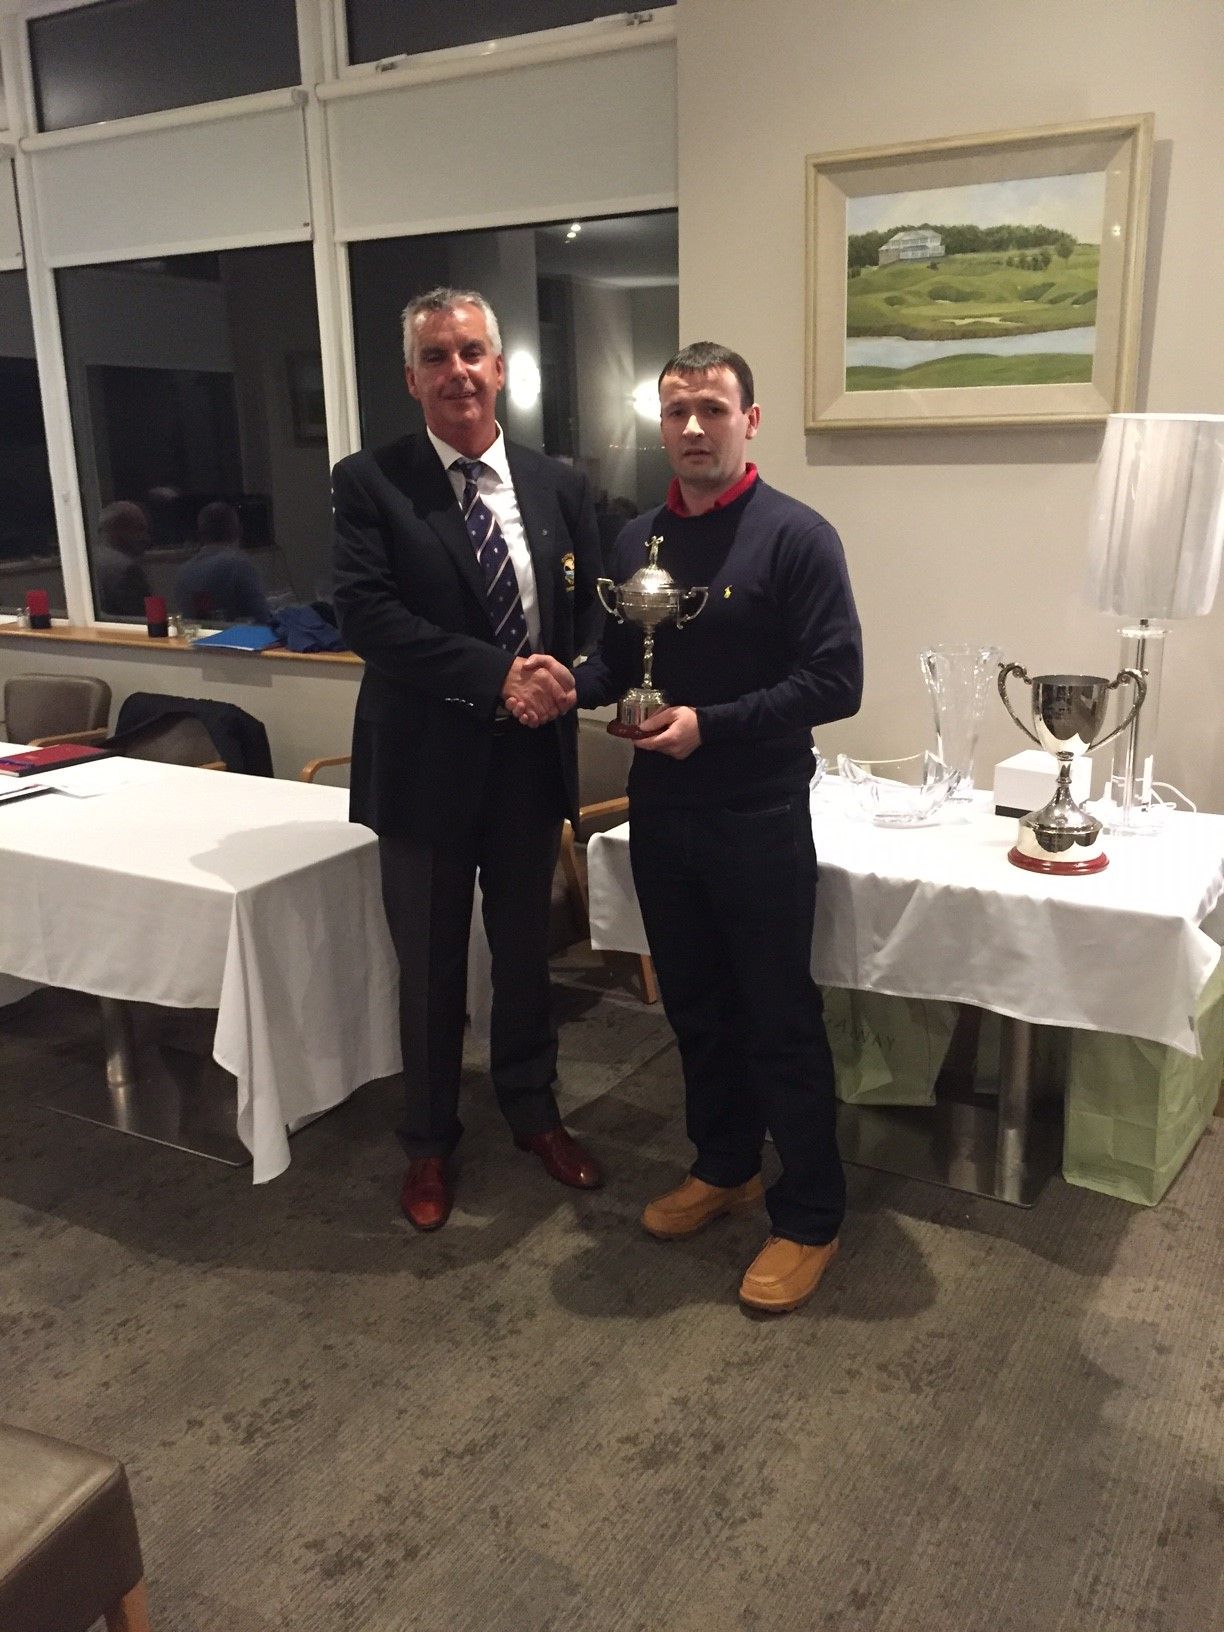 Congratulations Keith Harte our 2015 Golfer of the Year